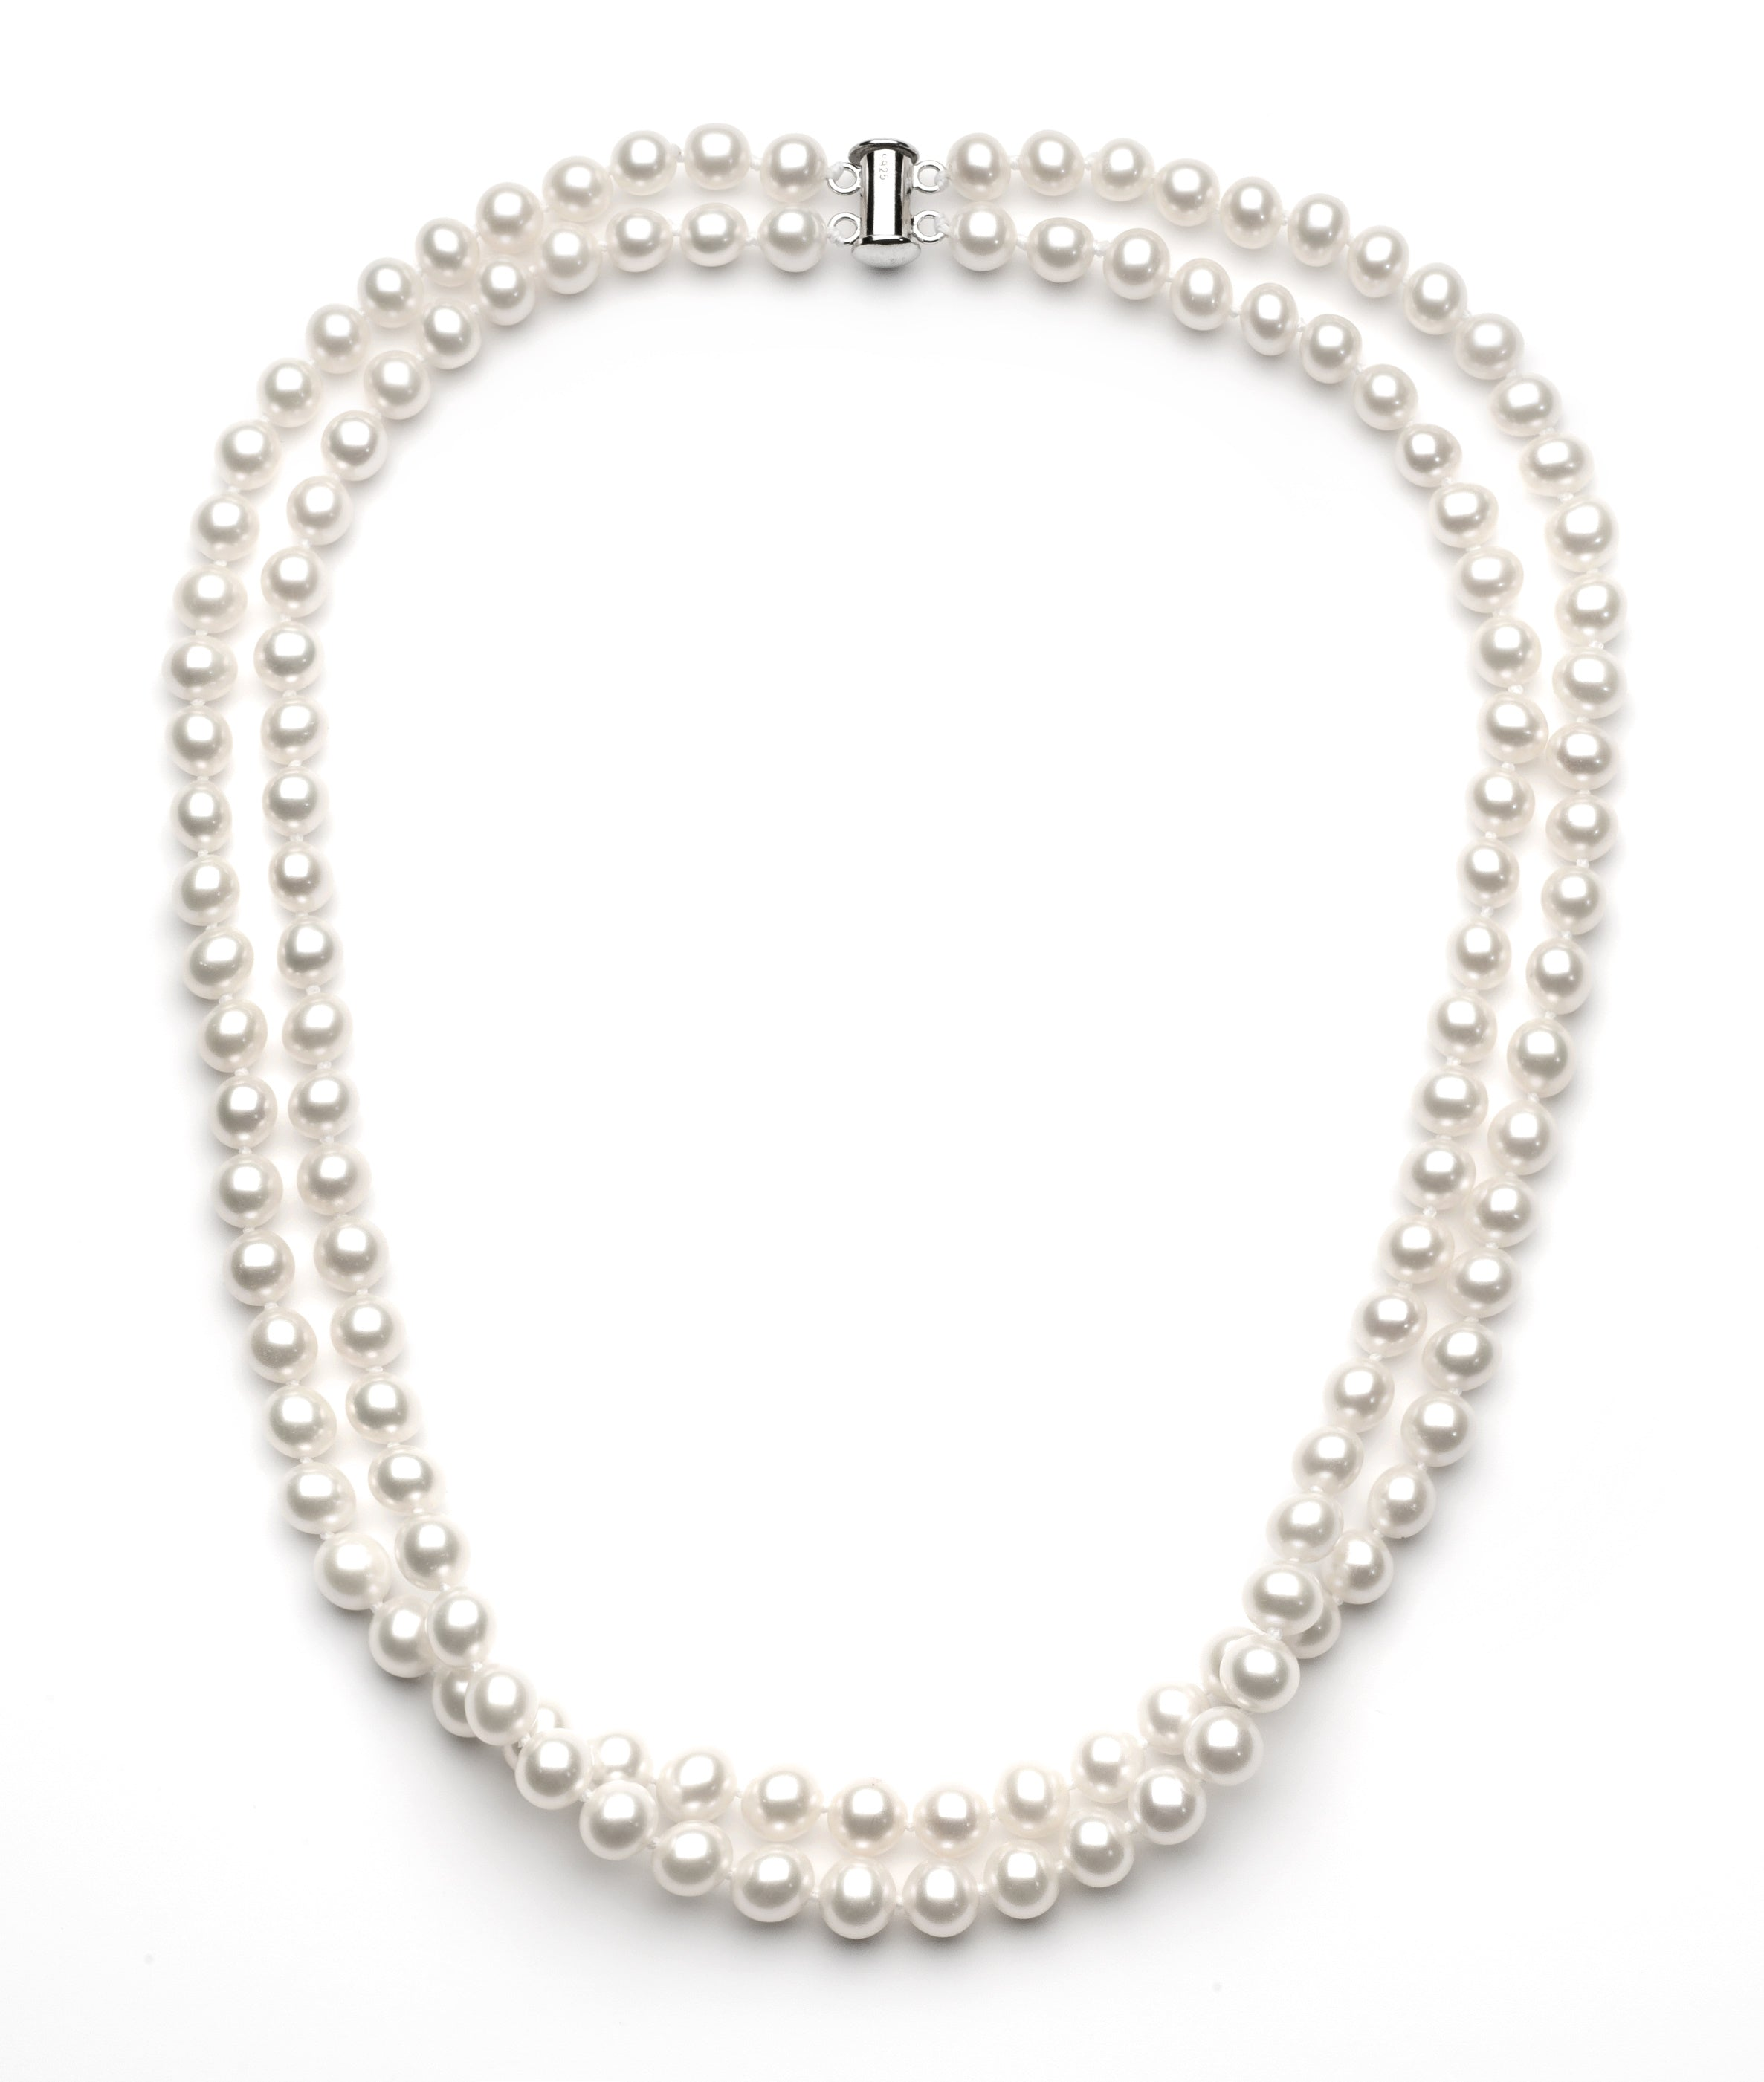 7.0-8.0 mm Double Strand White Freshwater Pearl Necklace